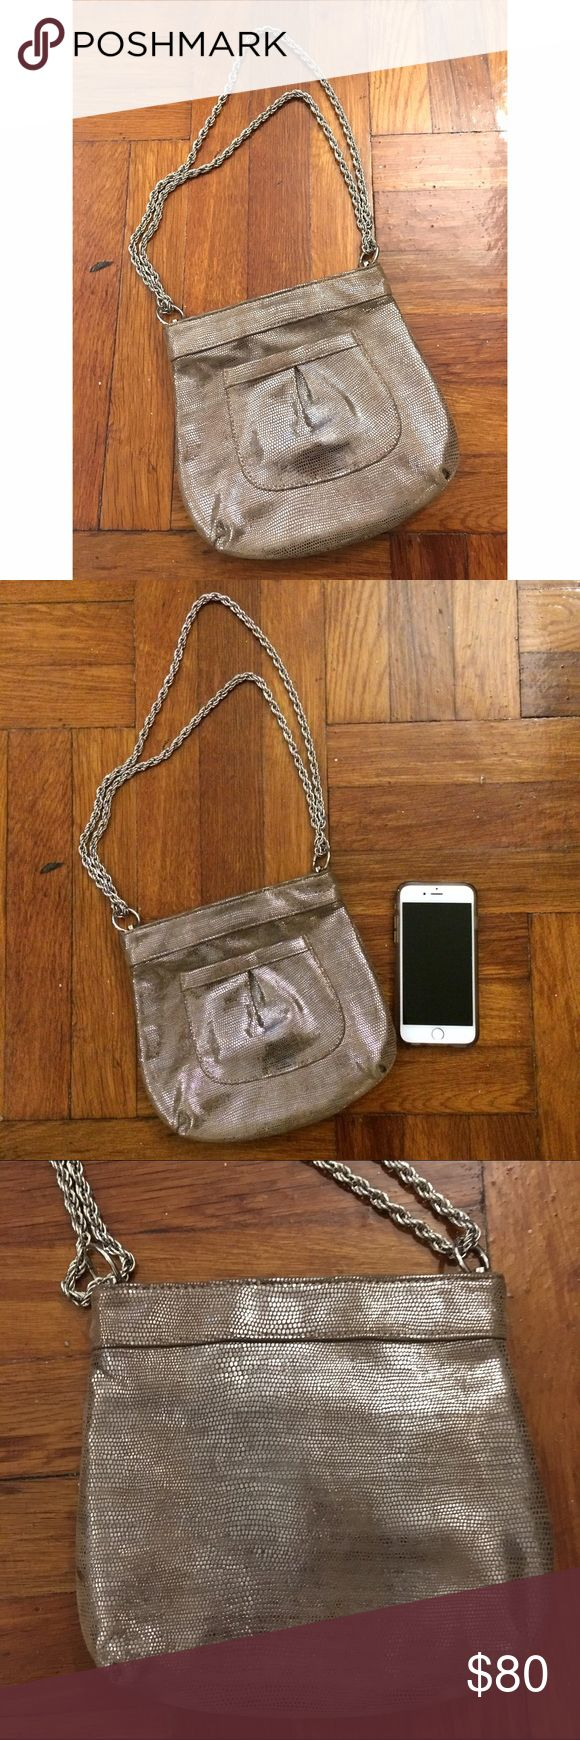 Lauren Merkin lamb leather evening shoulder bag Once-used evening bag with silver chain strap. Perfect condition, comes with original dust bag. Lauren Merkin Bags Shoulder Bags